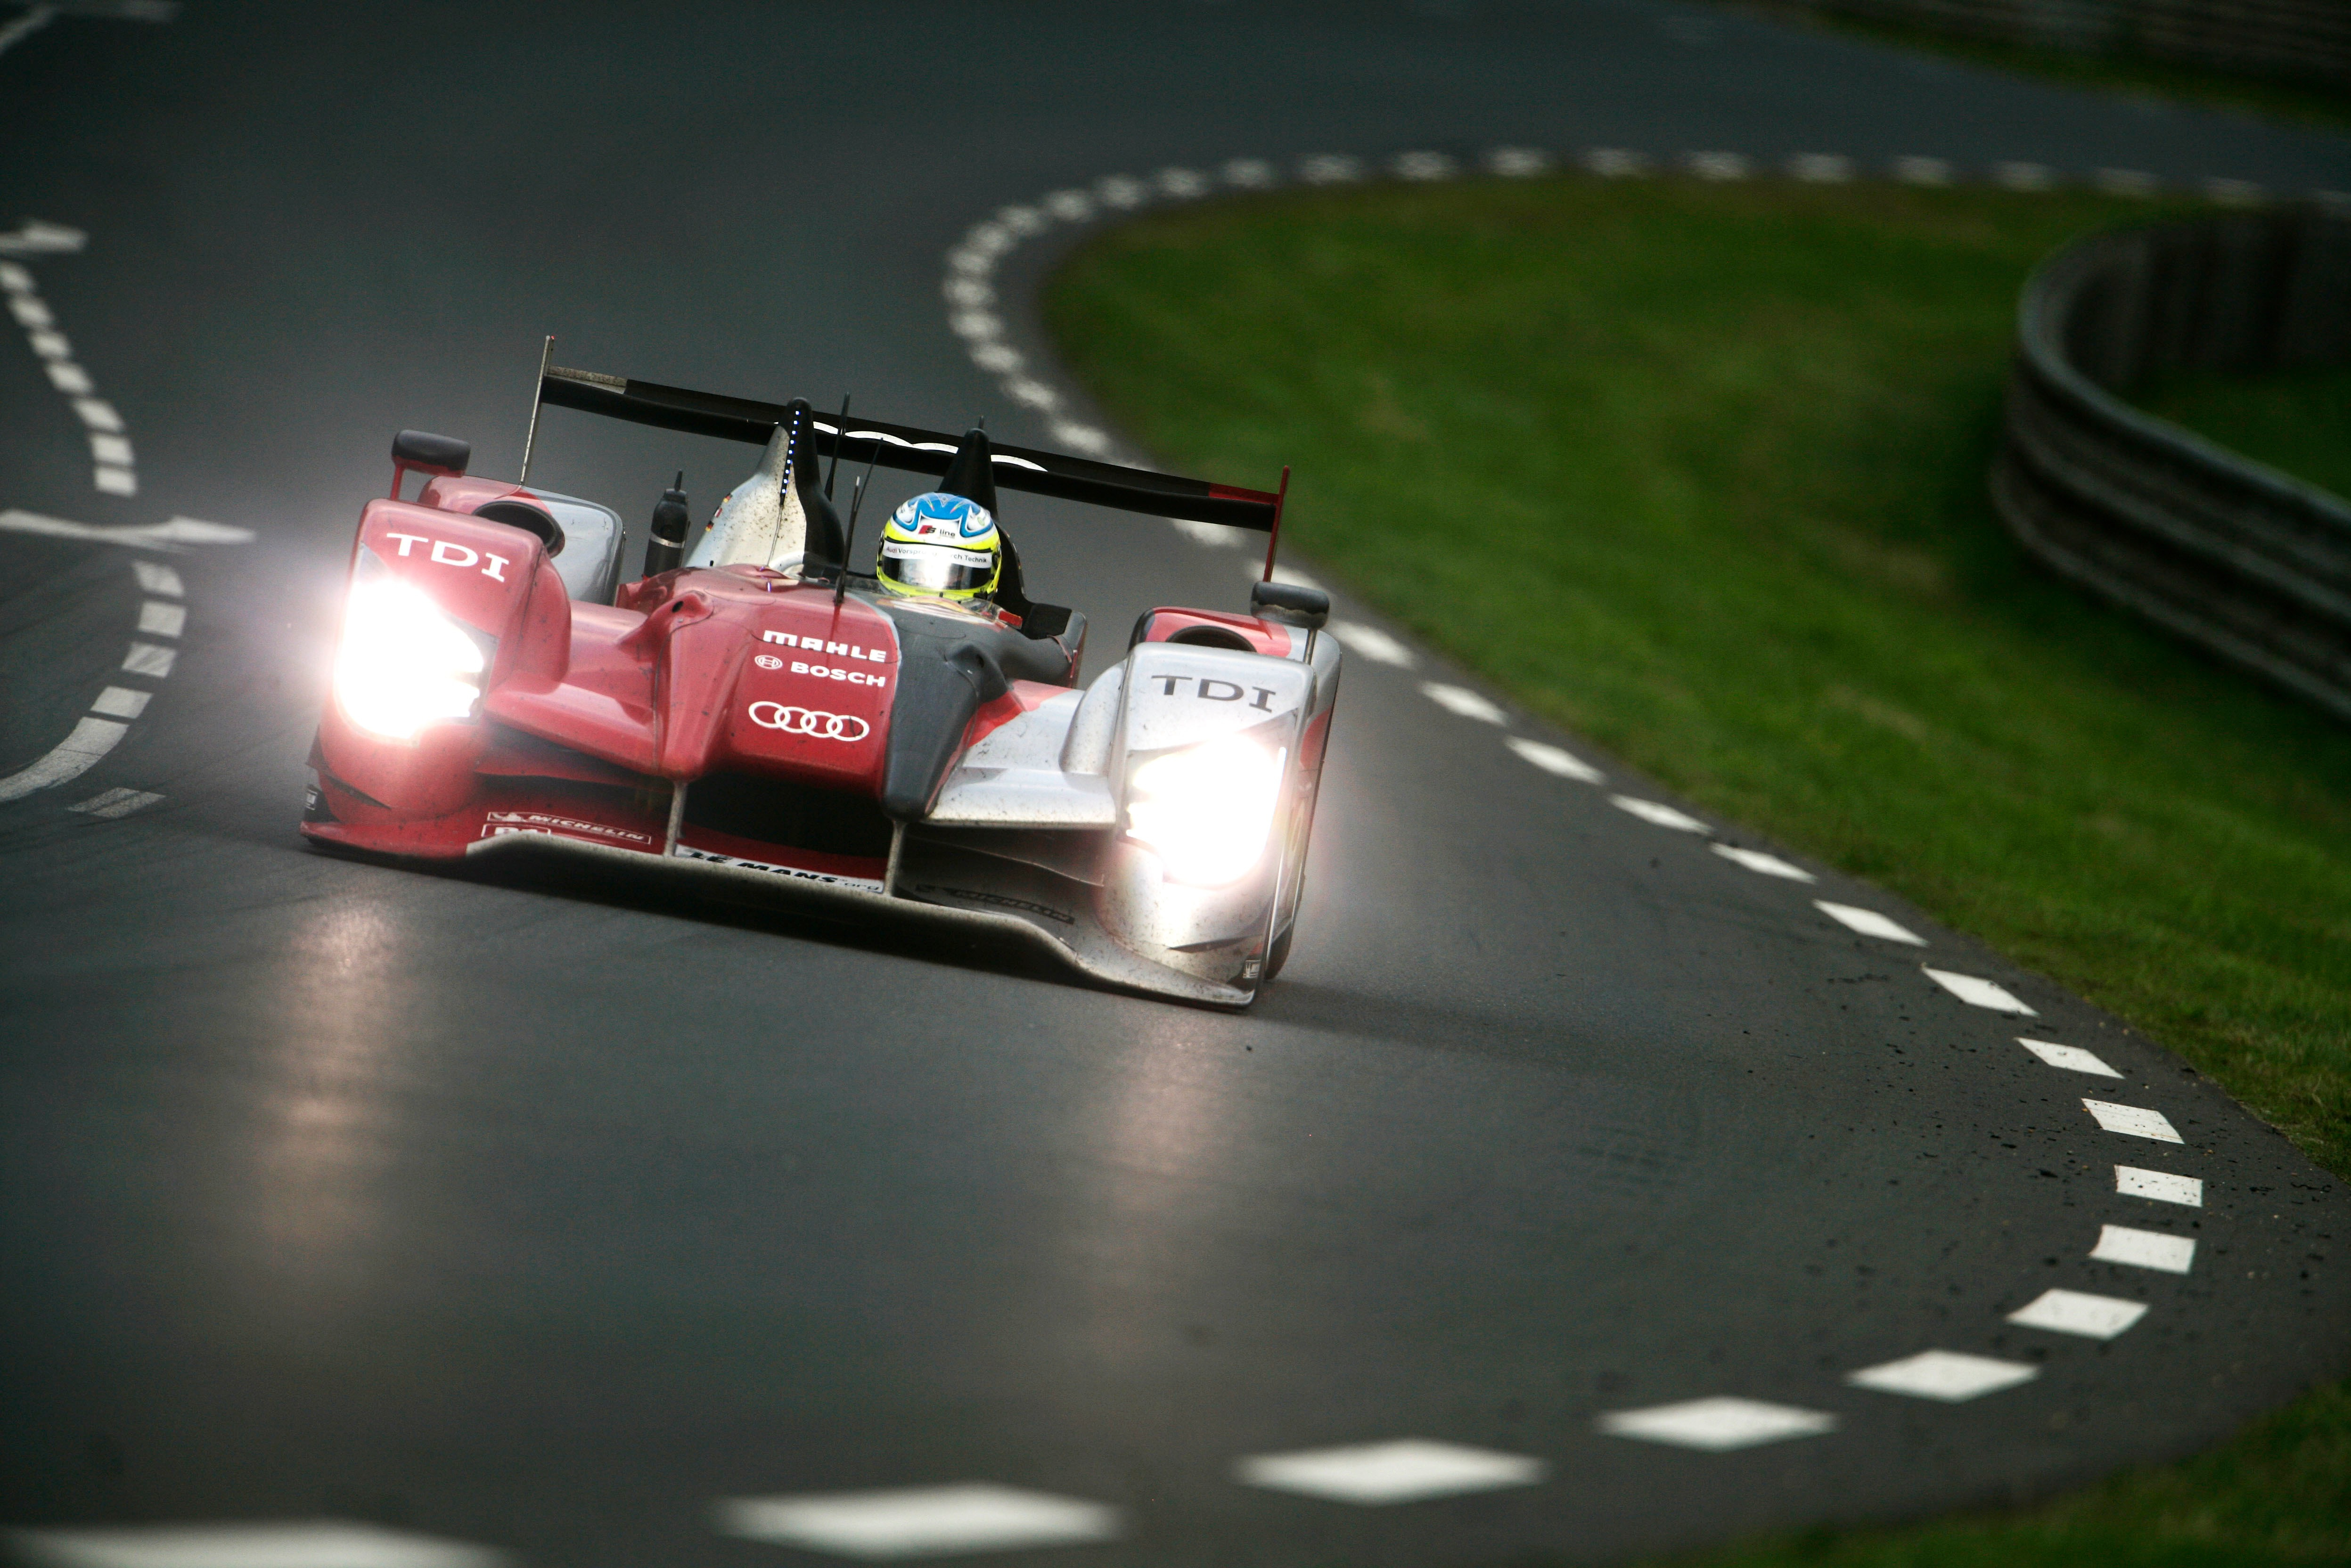 Trouble-free run in dry conditions in 2010 gave Audi's 'ugly duckling' R-15 a record-breaking victory